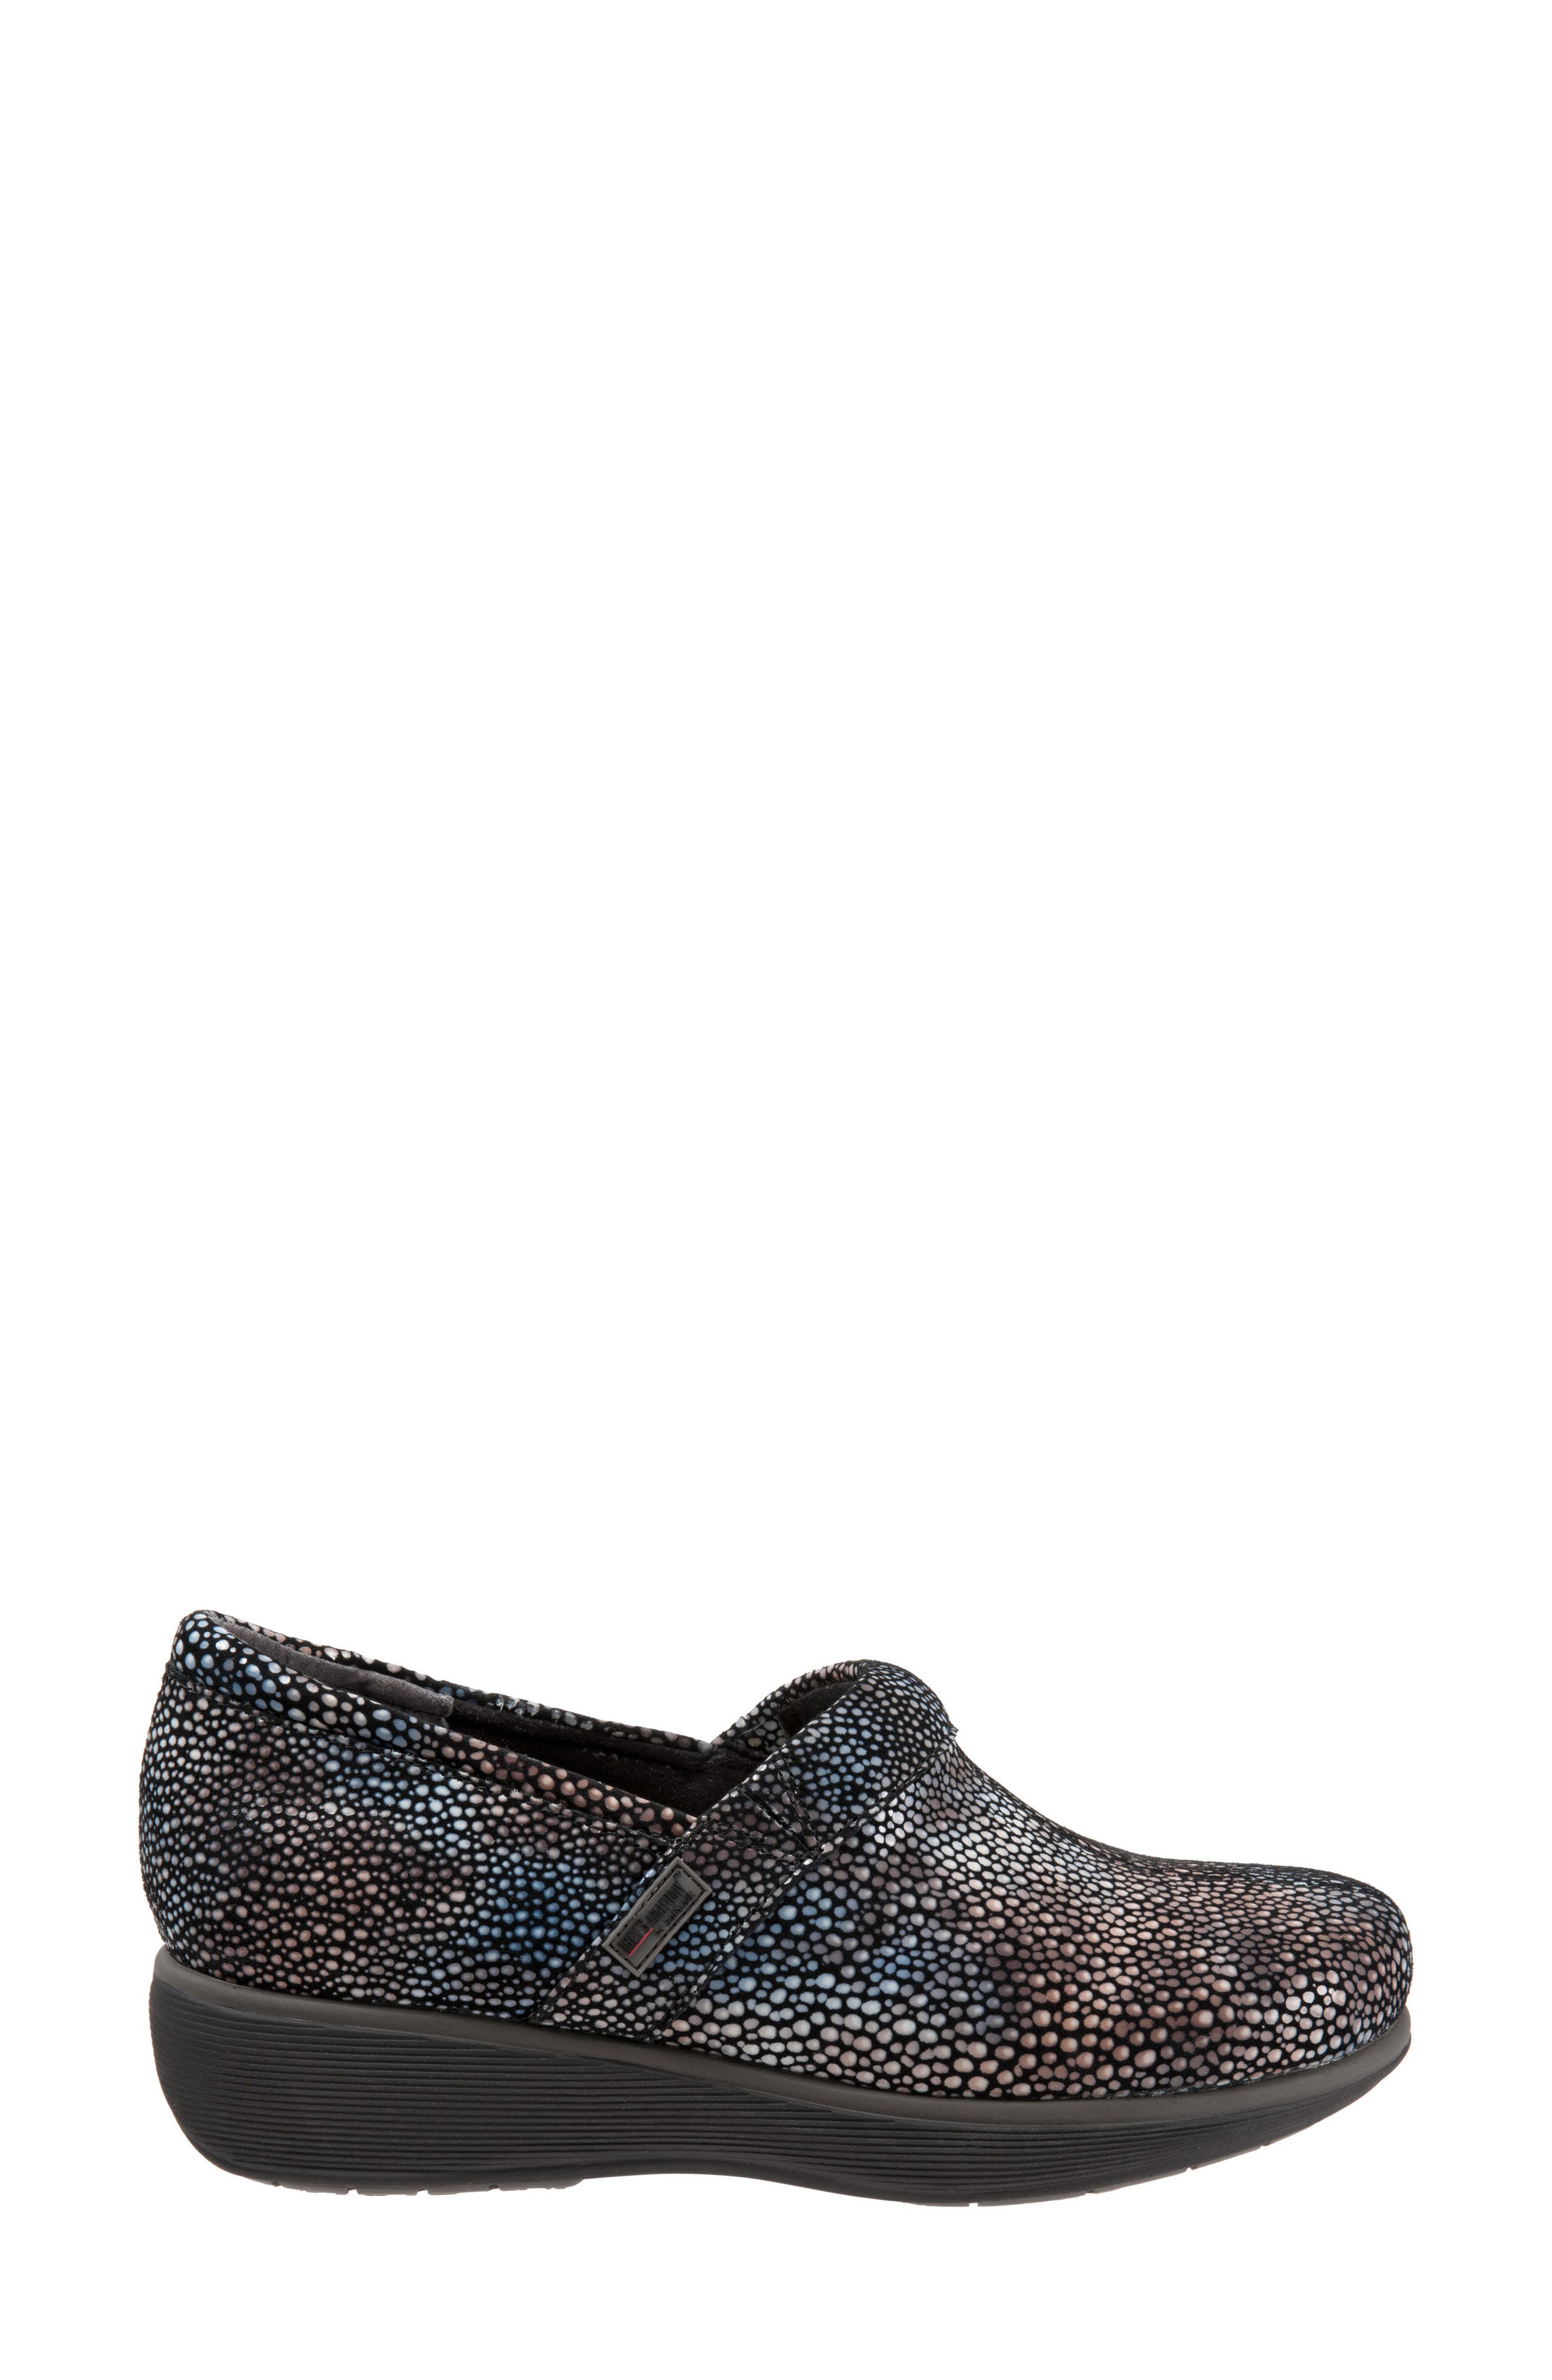 Grey's Anatomy<sup>®</sup> by Softwalk<sup>®</sup> 'Meredith' Leather Clog,                             Alternate thumbnail 3, color,                             Multi Mosaic Leather